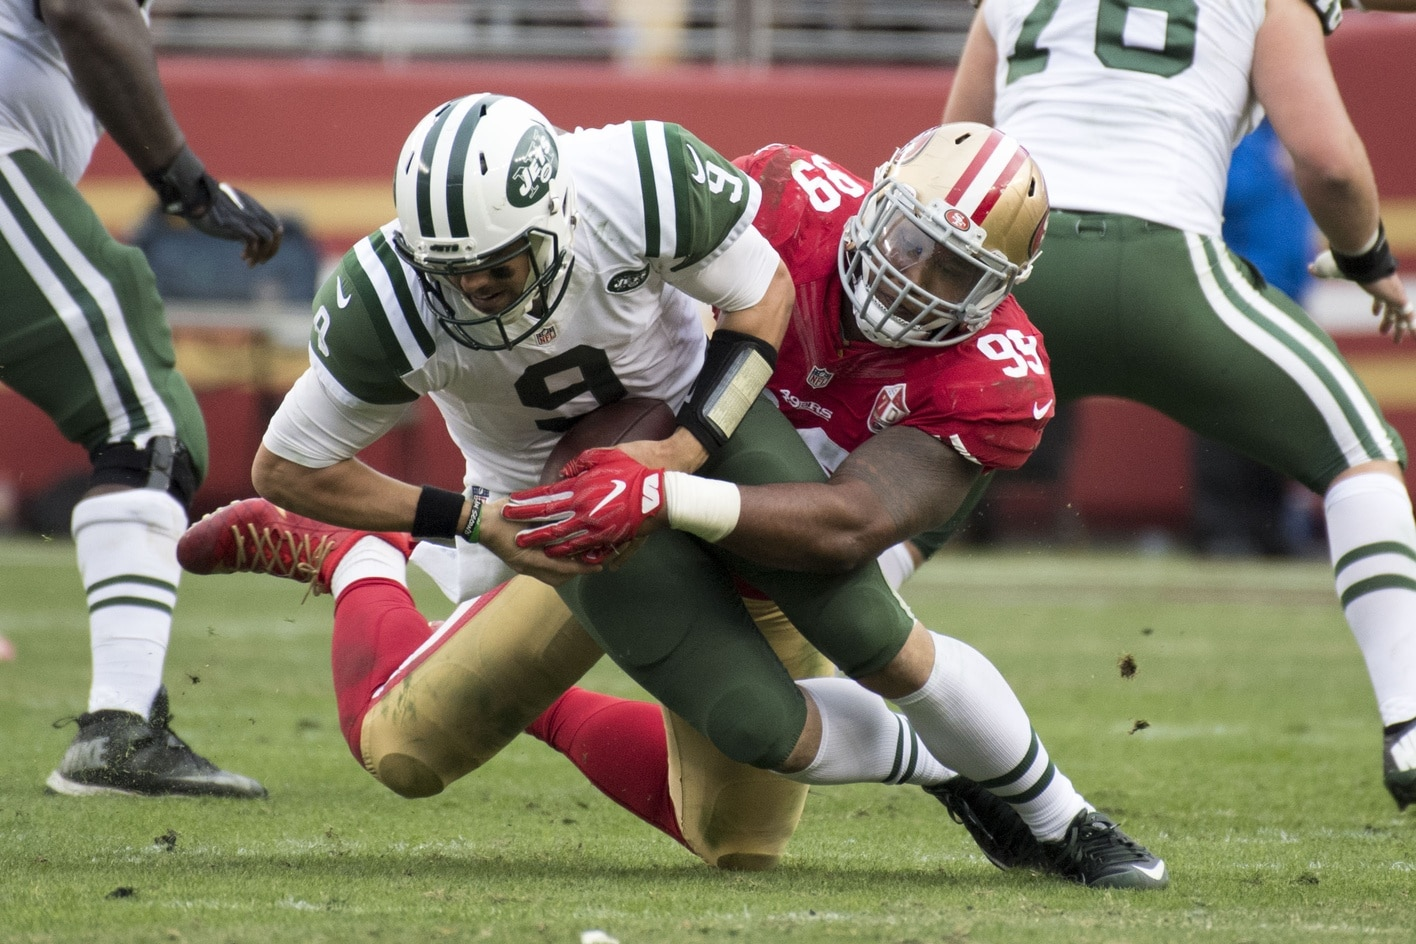 DeForest Buckner will churn out Pro Bowl performance in 2017.